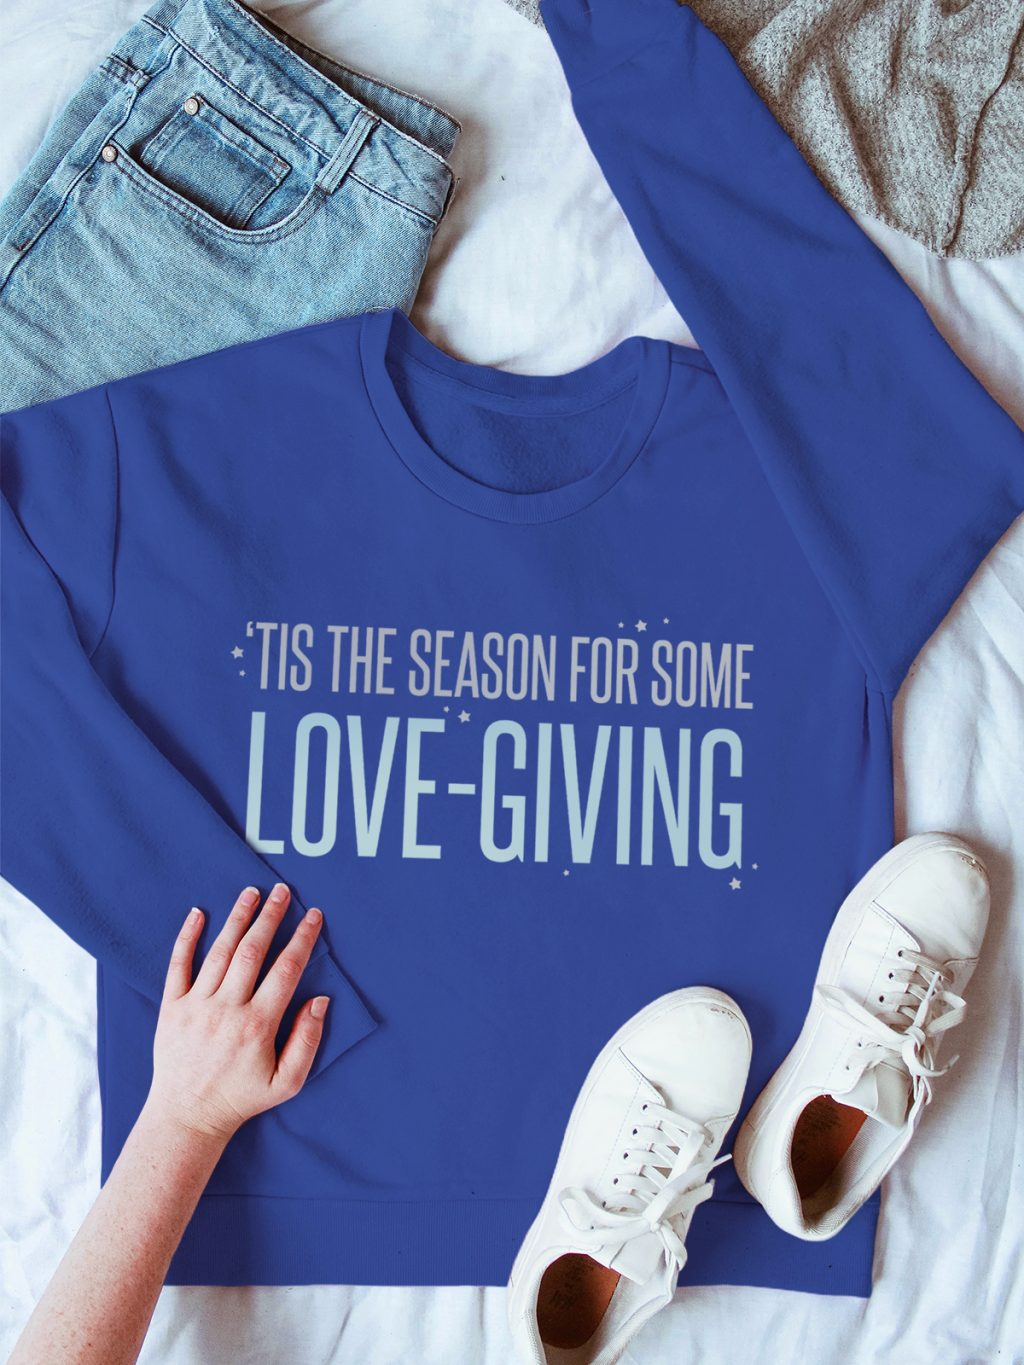 LyricMerch lets you wear your favorite lyrics on t-shirts, hoodies, crewnecks, long sleeve tees, and more - and does so legally by giving back a significant percentage of proceeds to your favorite songwriters and artists.